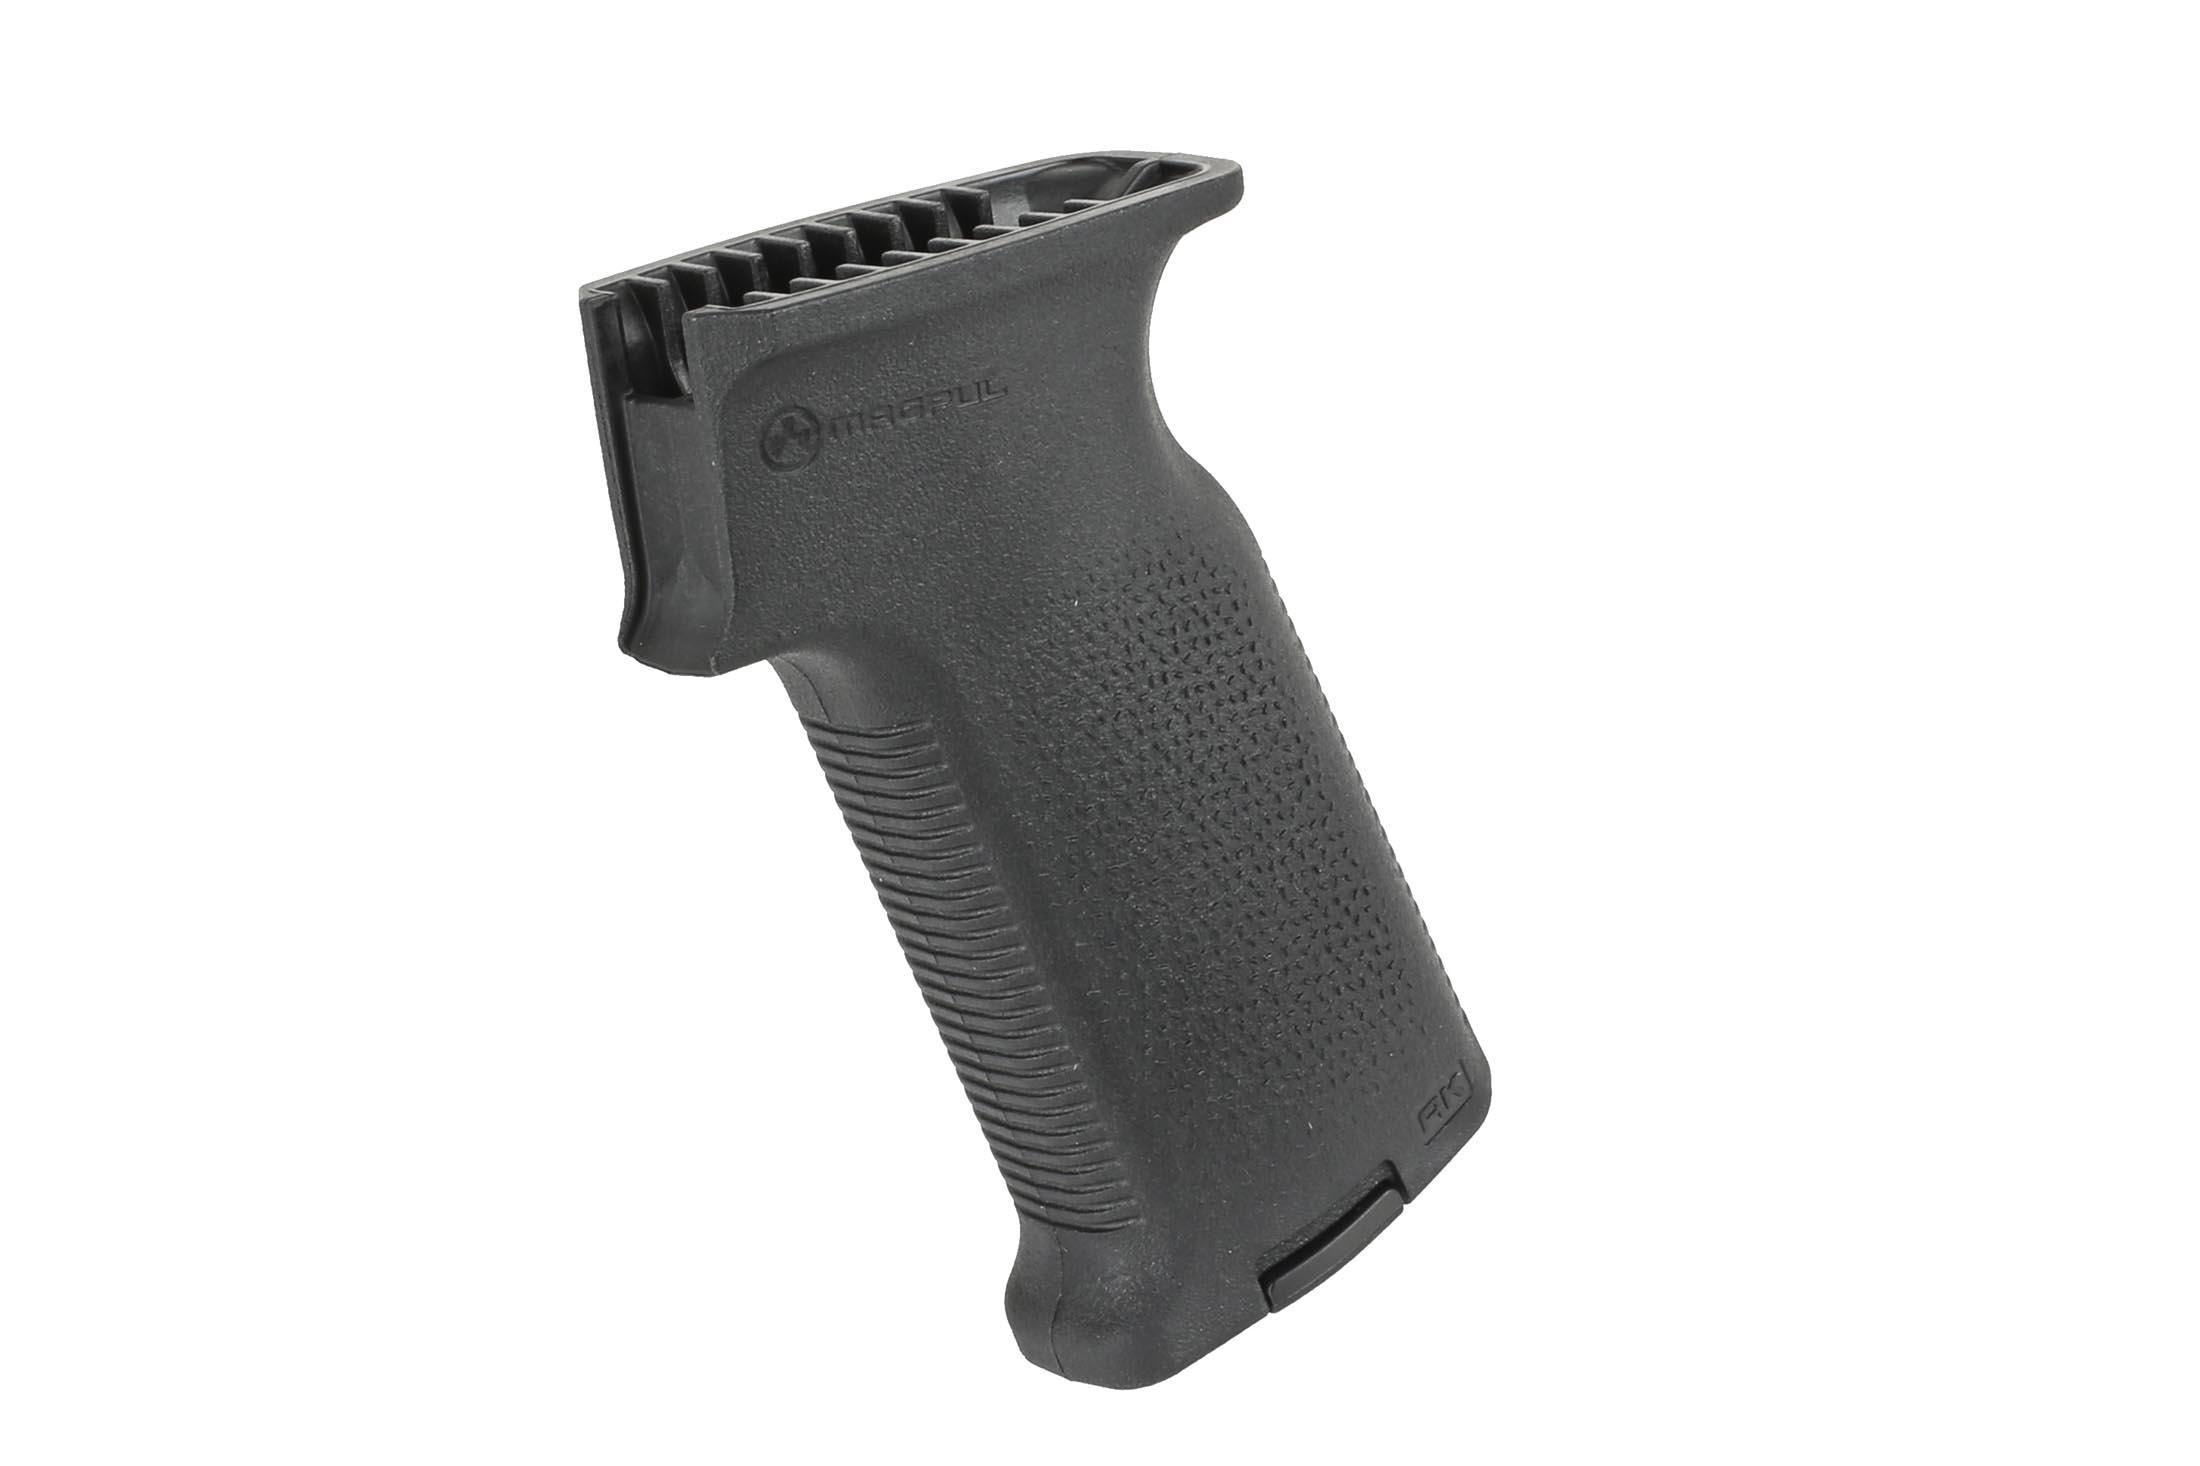 The MOE K2 AK pistol grip is compatible with Magpul storage cores